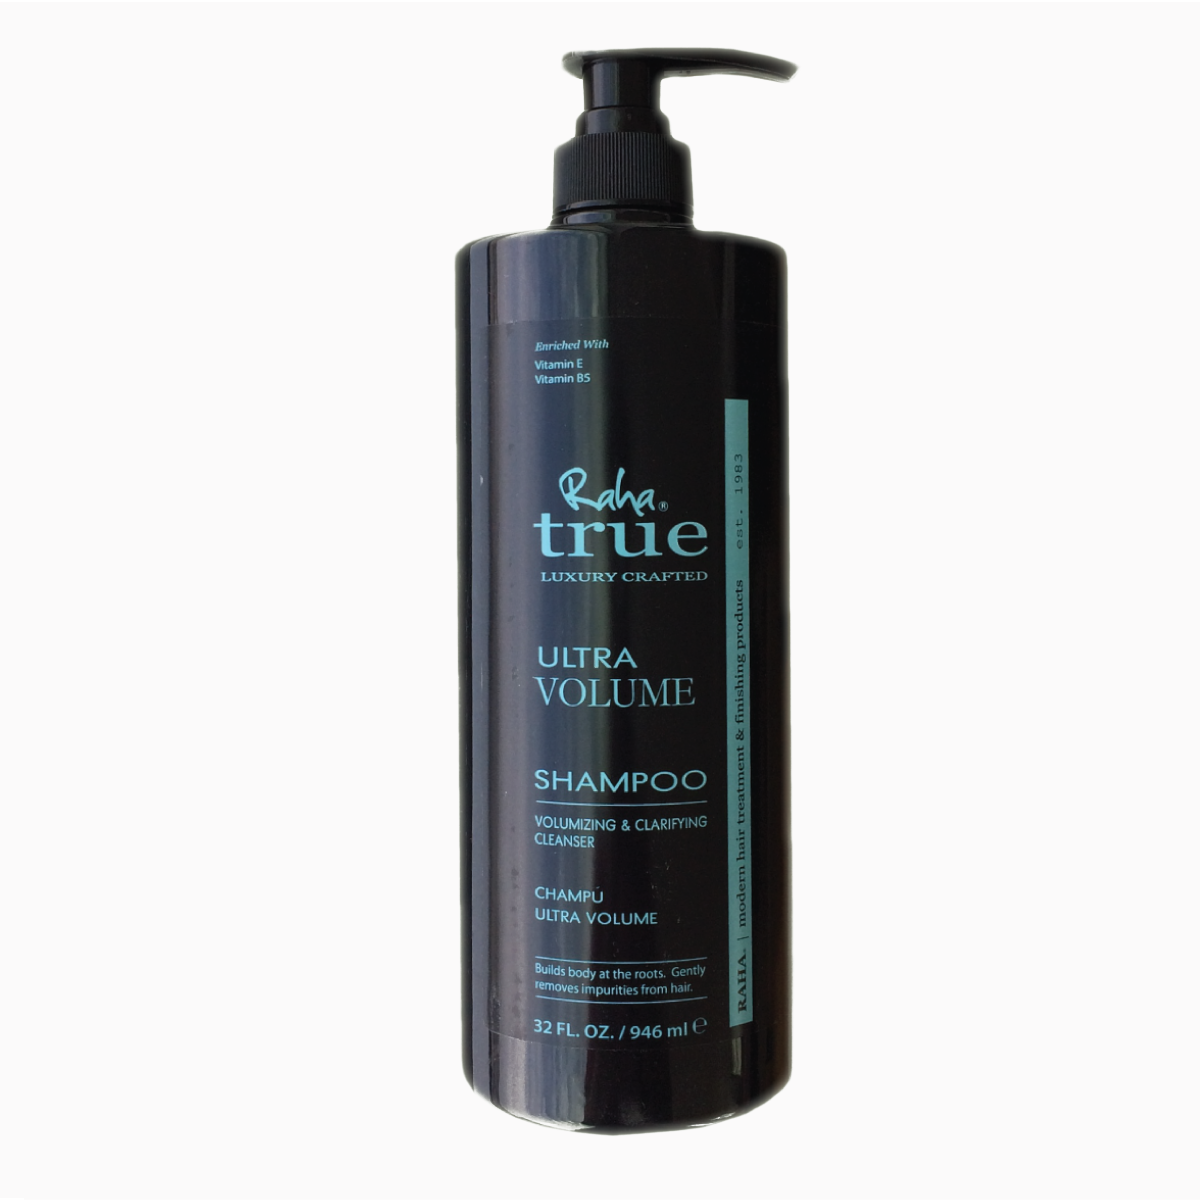 Ultra Volume Shampoo (PRO Level Pricing)